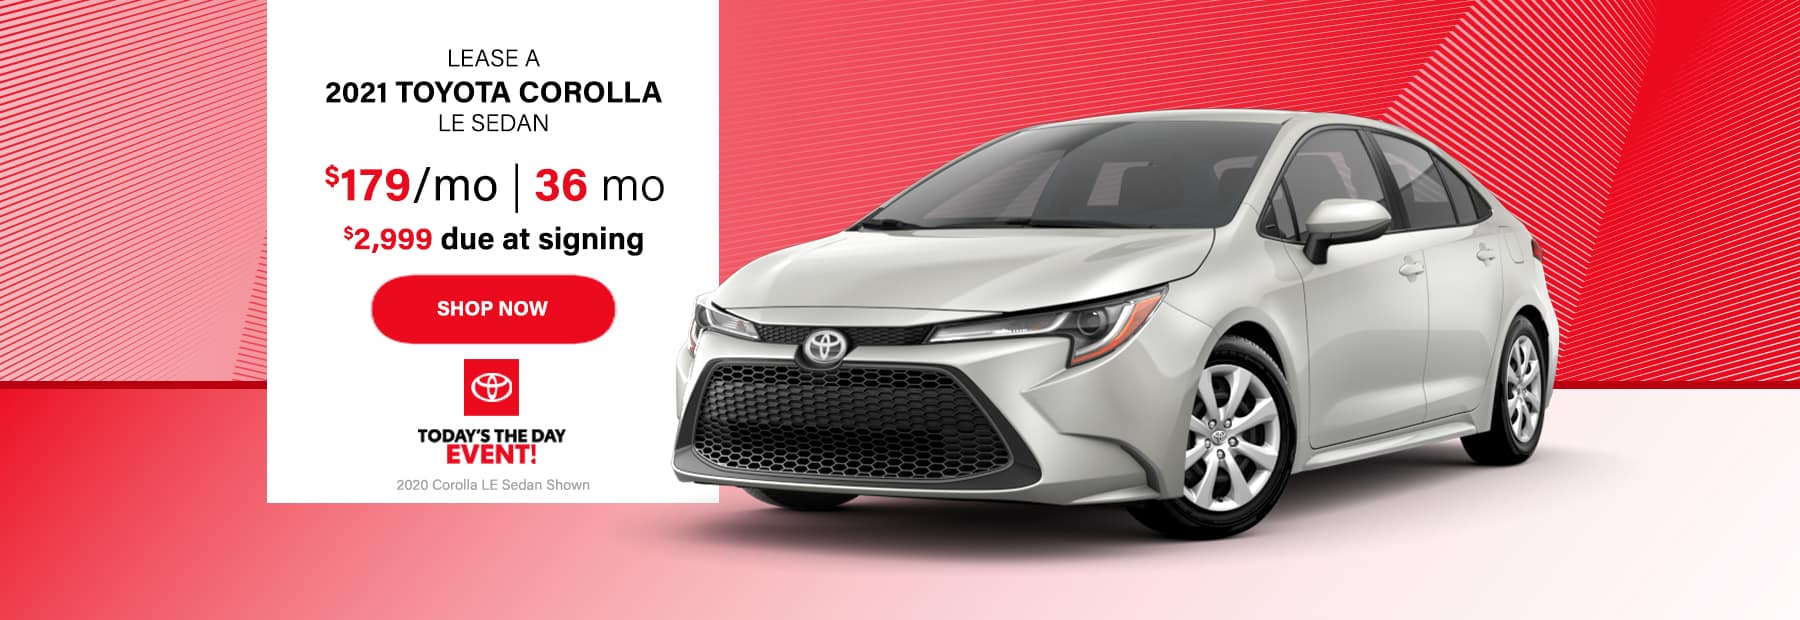 Lease a 2021 Toyota Corolla LE Sedan for $179/mo. for 36 mos. with $2,999 down